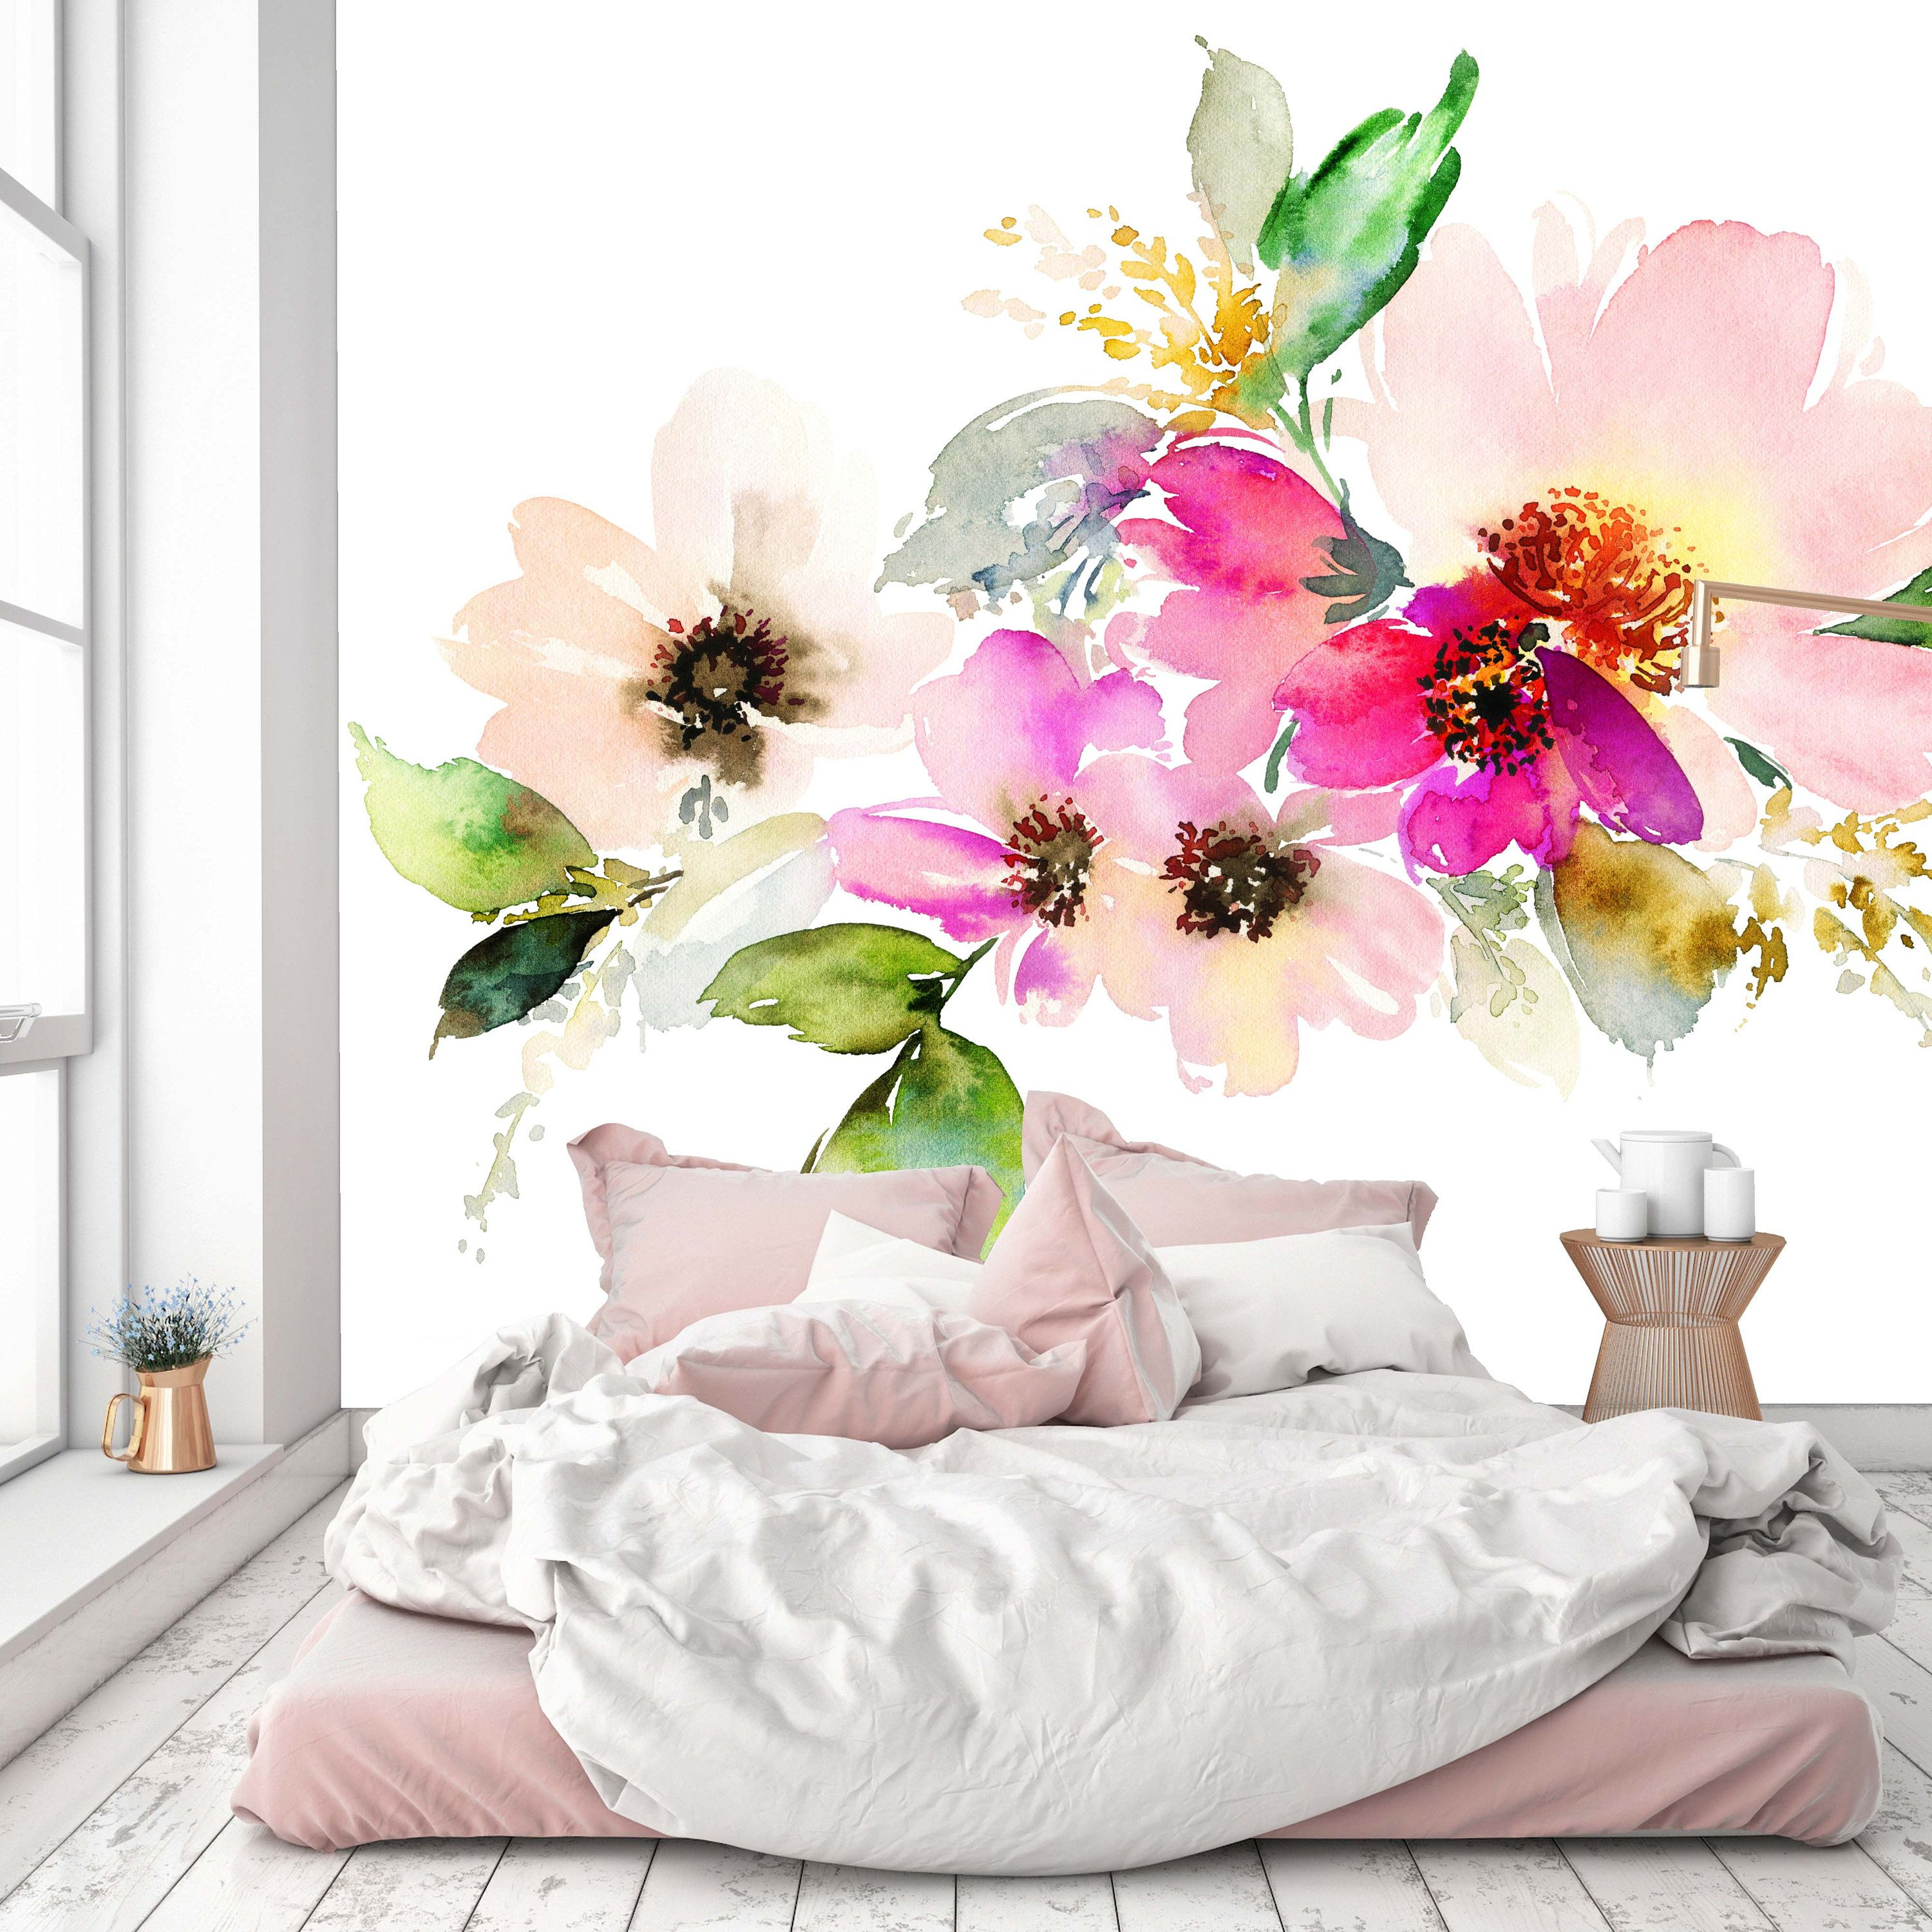 Removable Wallpaper Mural Peel Stick Flowers Watercolor